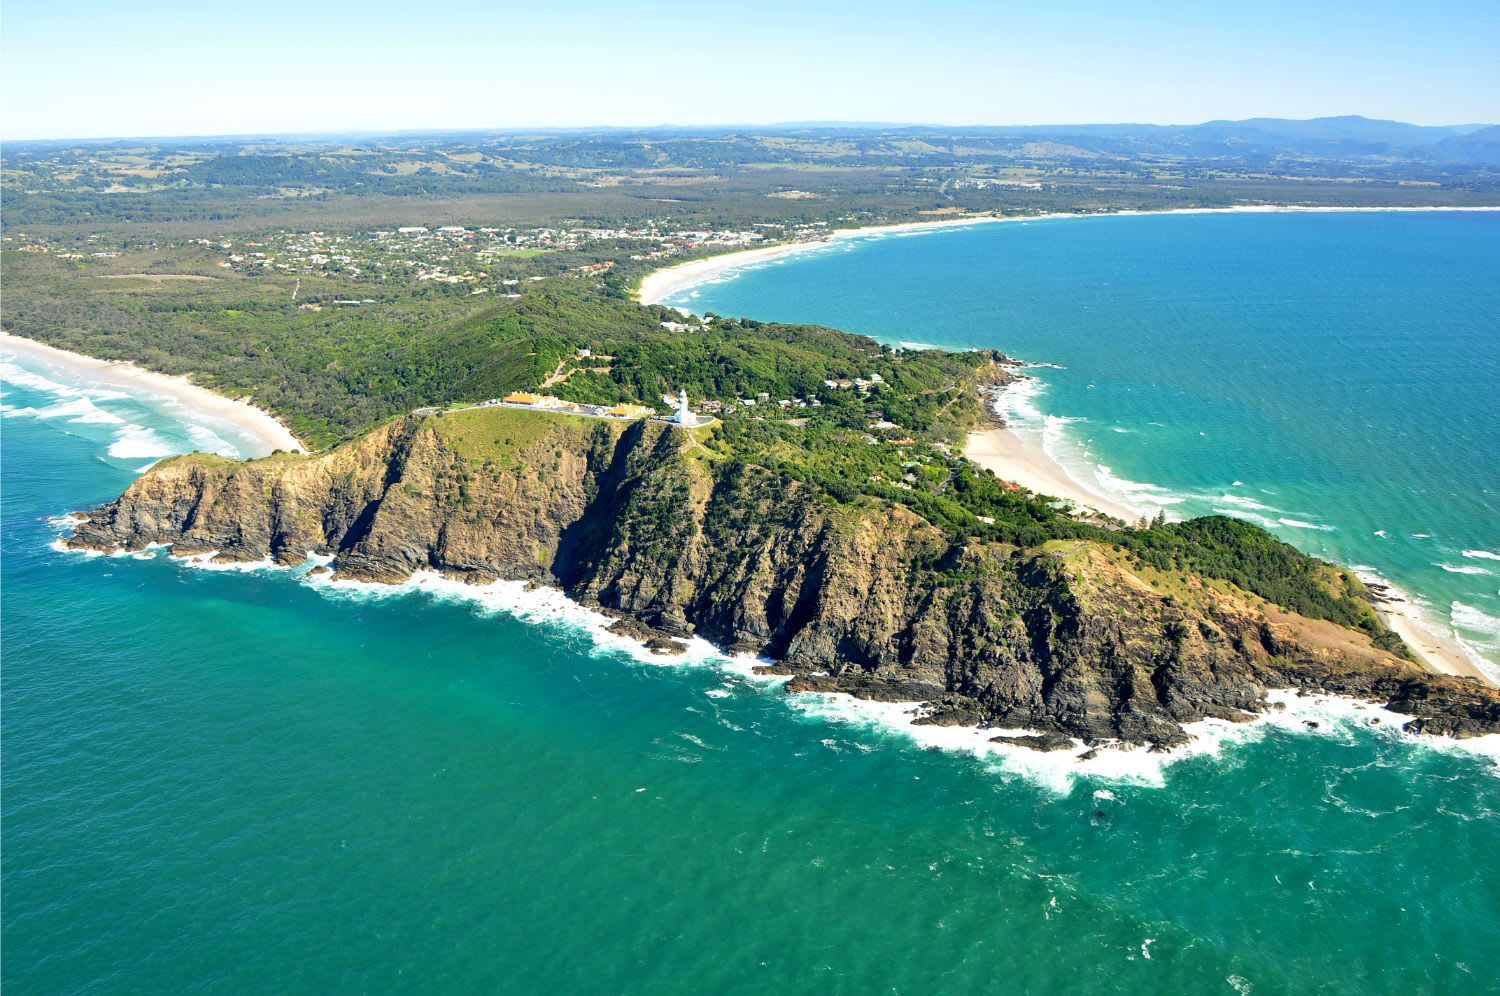 Helicopter 30min Scenic Flight For 2 People - Byron Bay